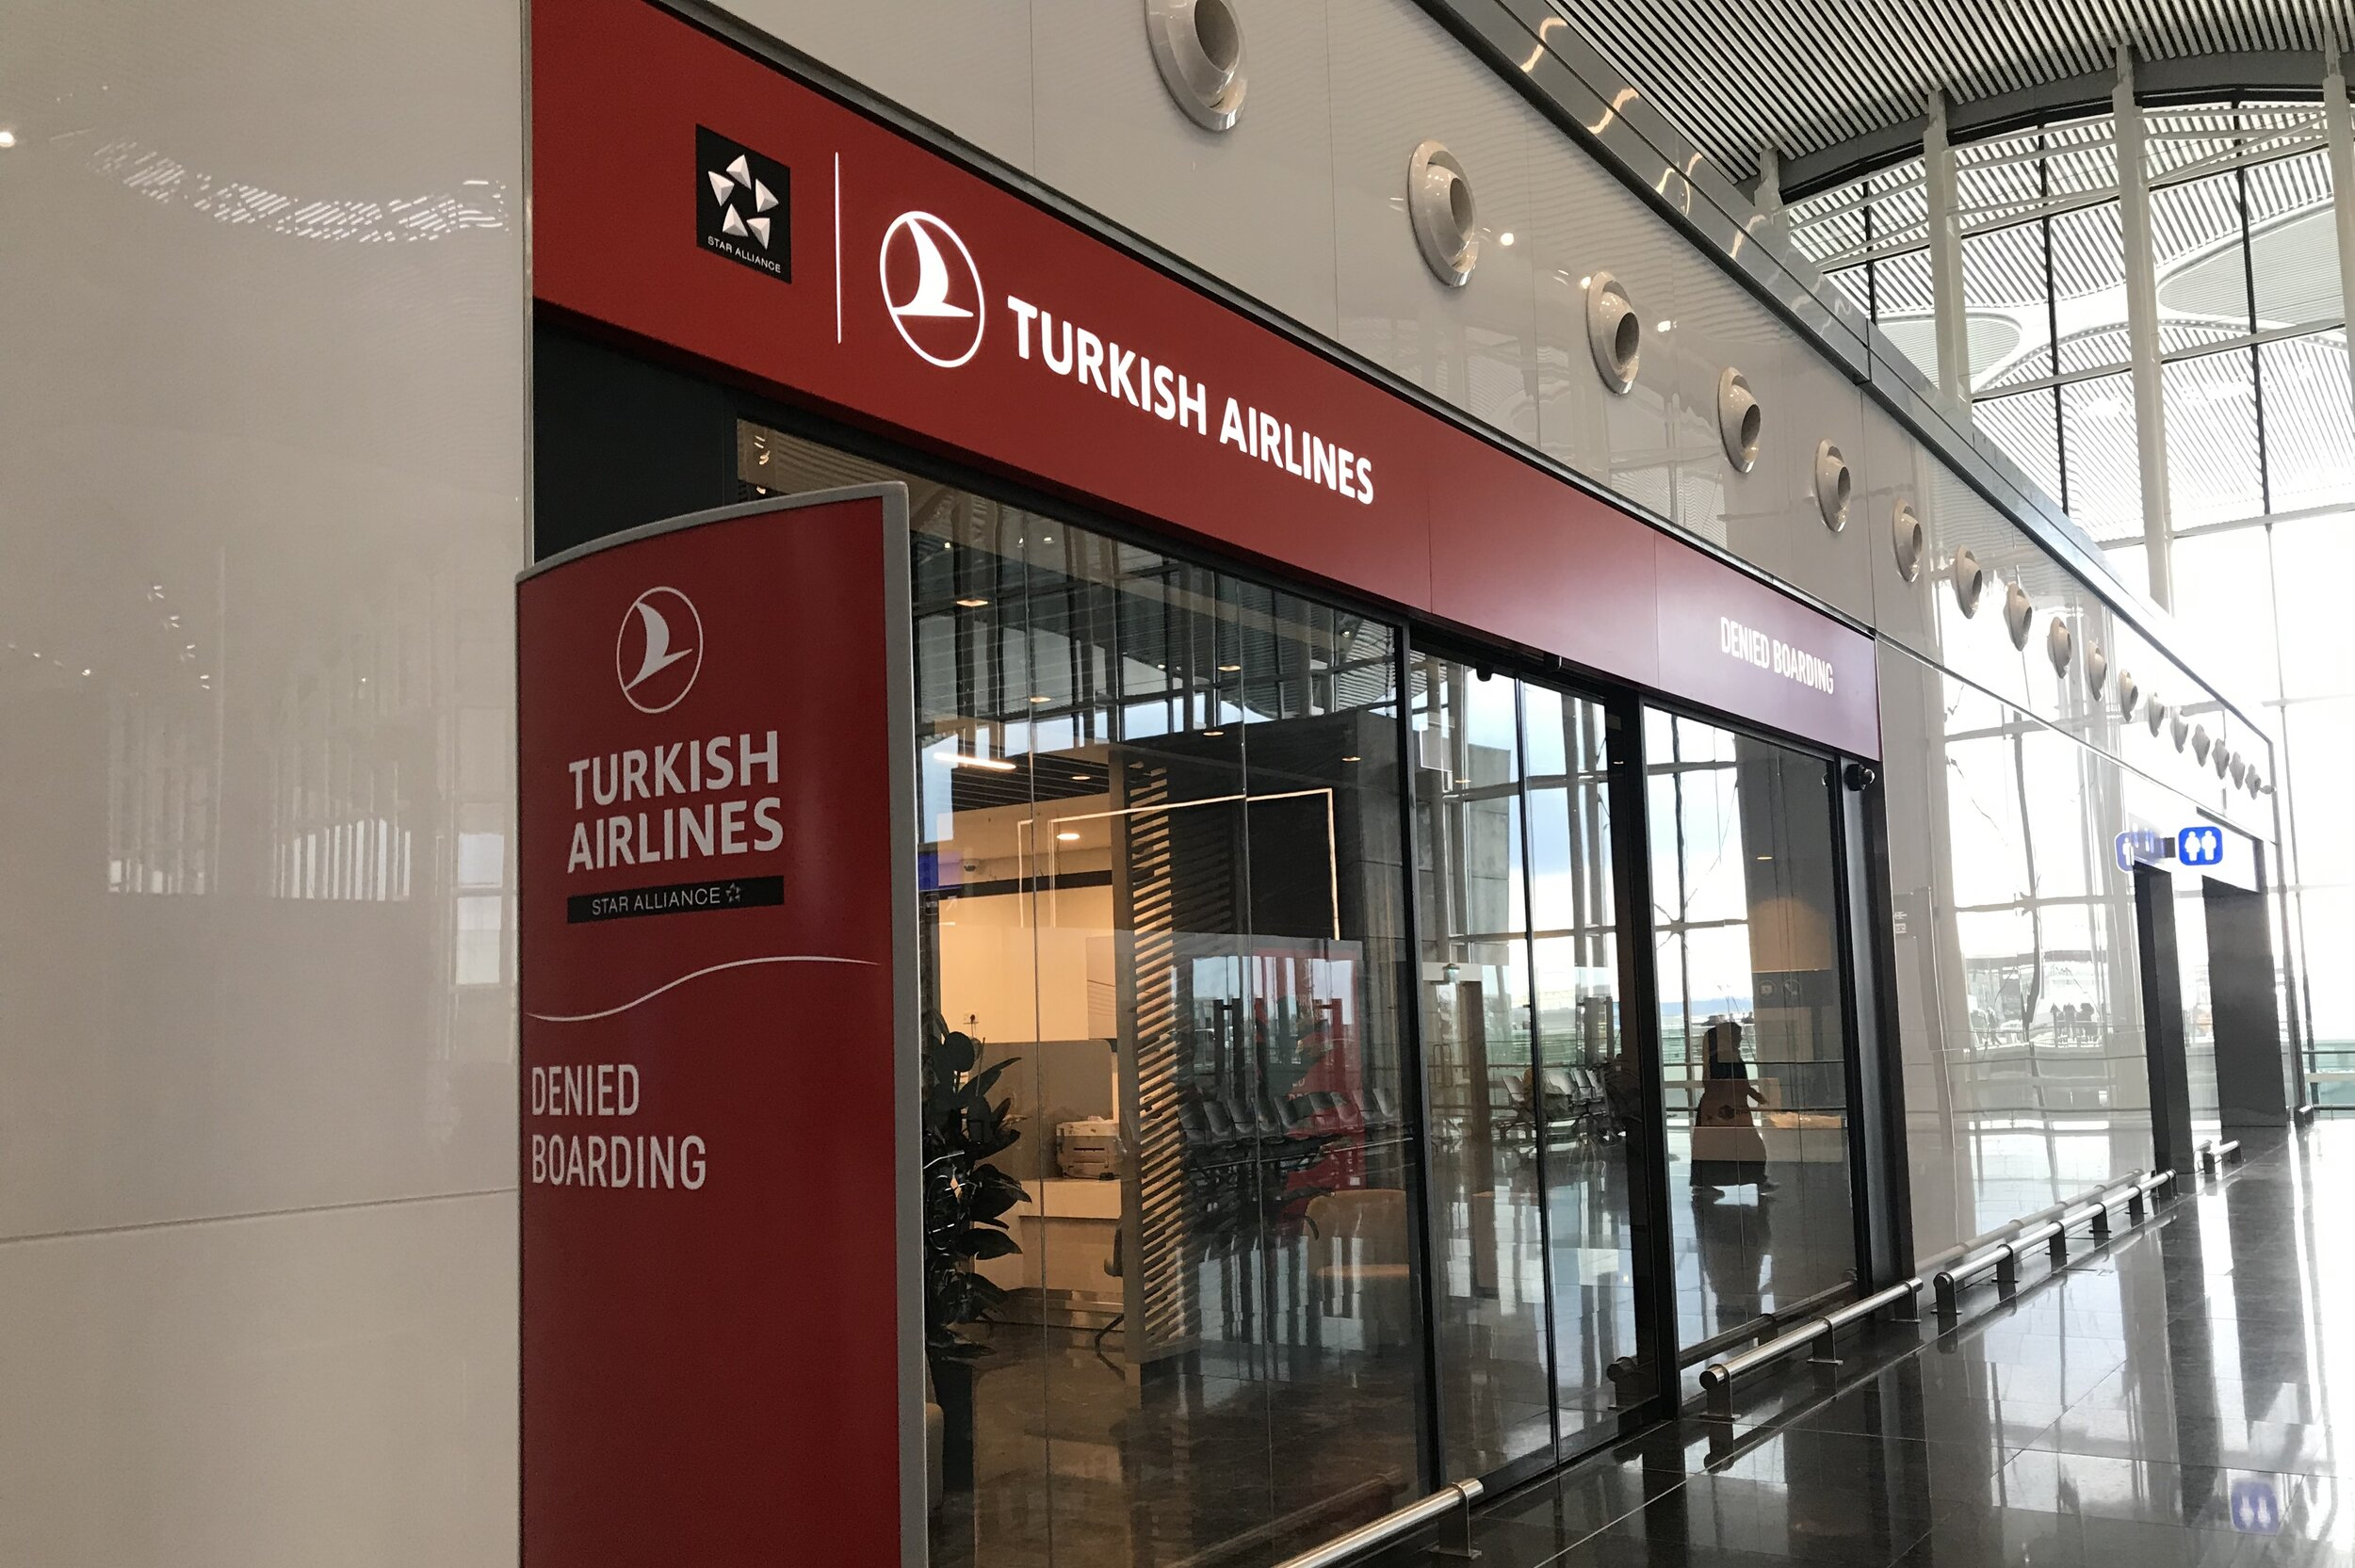 Istanbul New Airport – Denied Boarding lounge